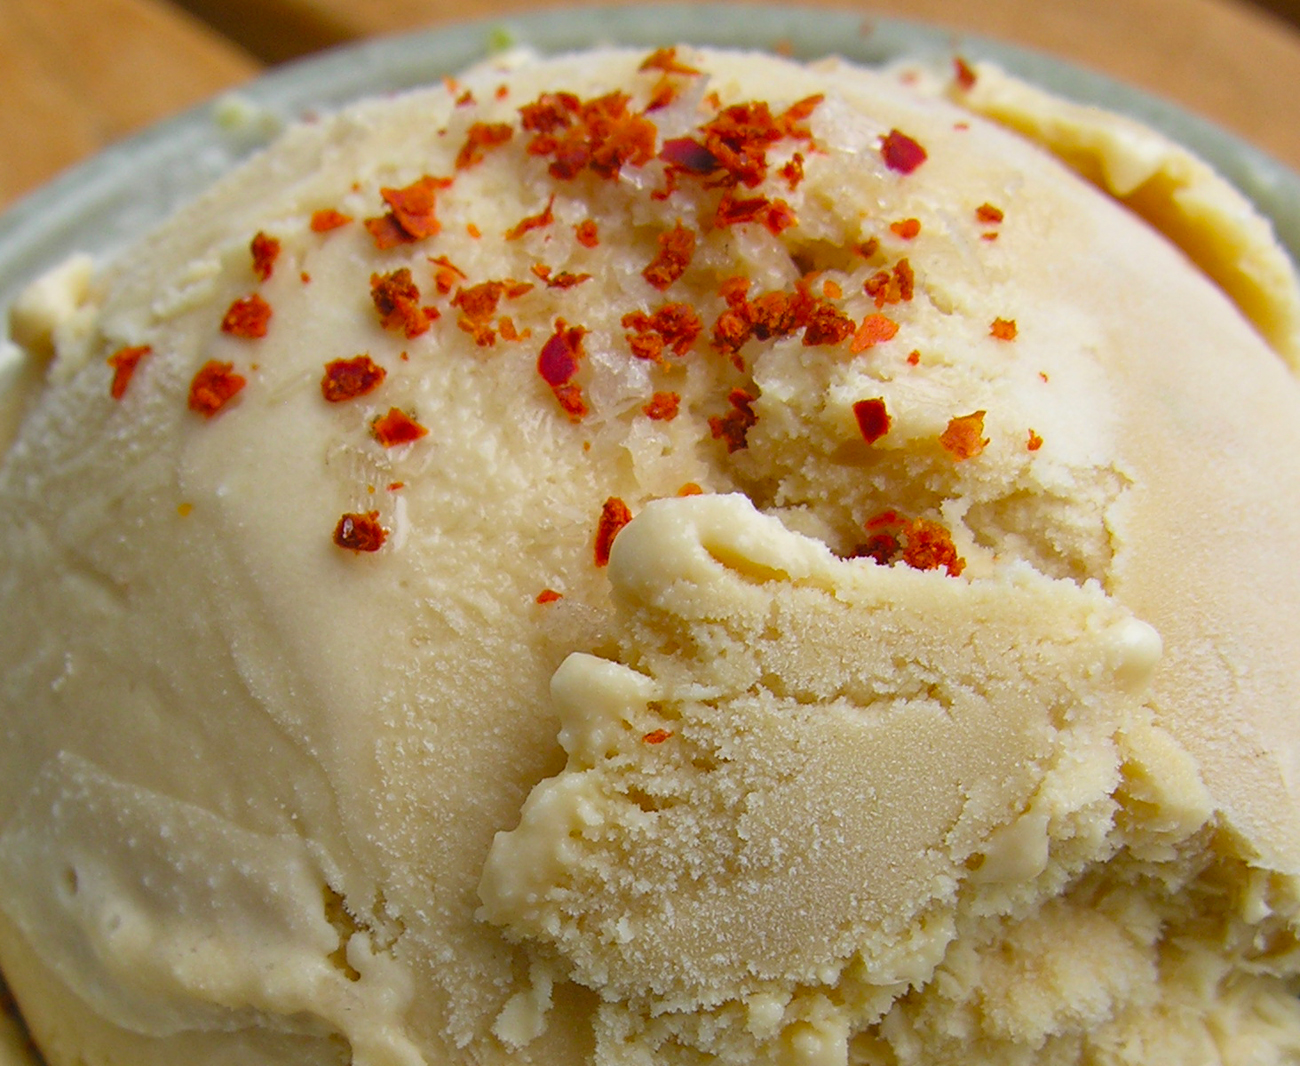 Hot pepper and citrus &quot;tea&quot; ice cream